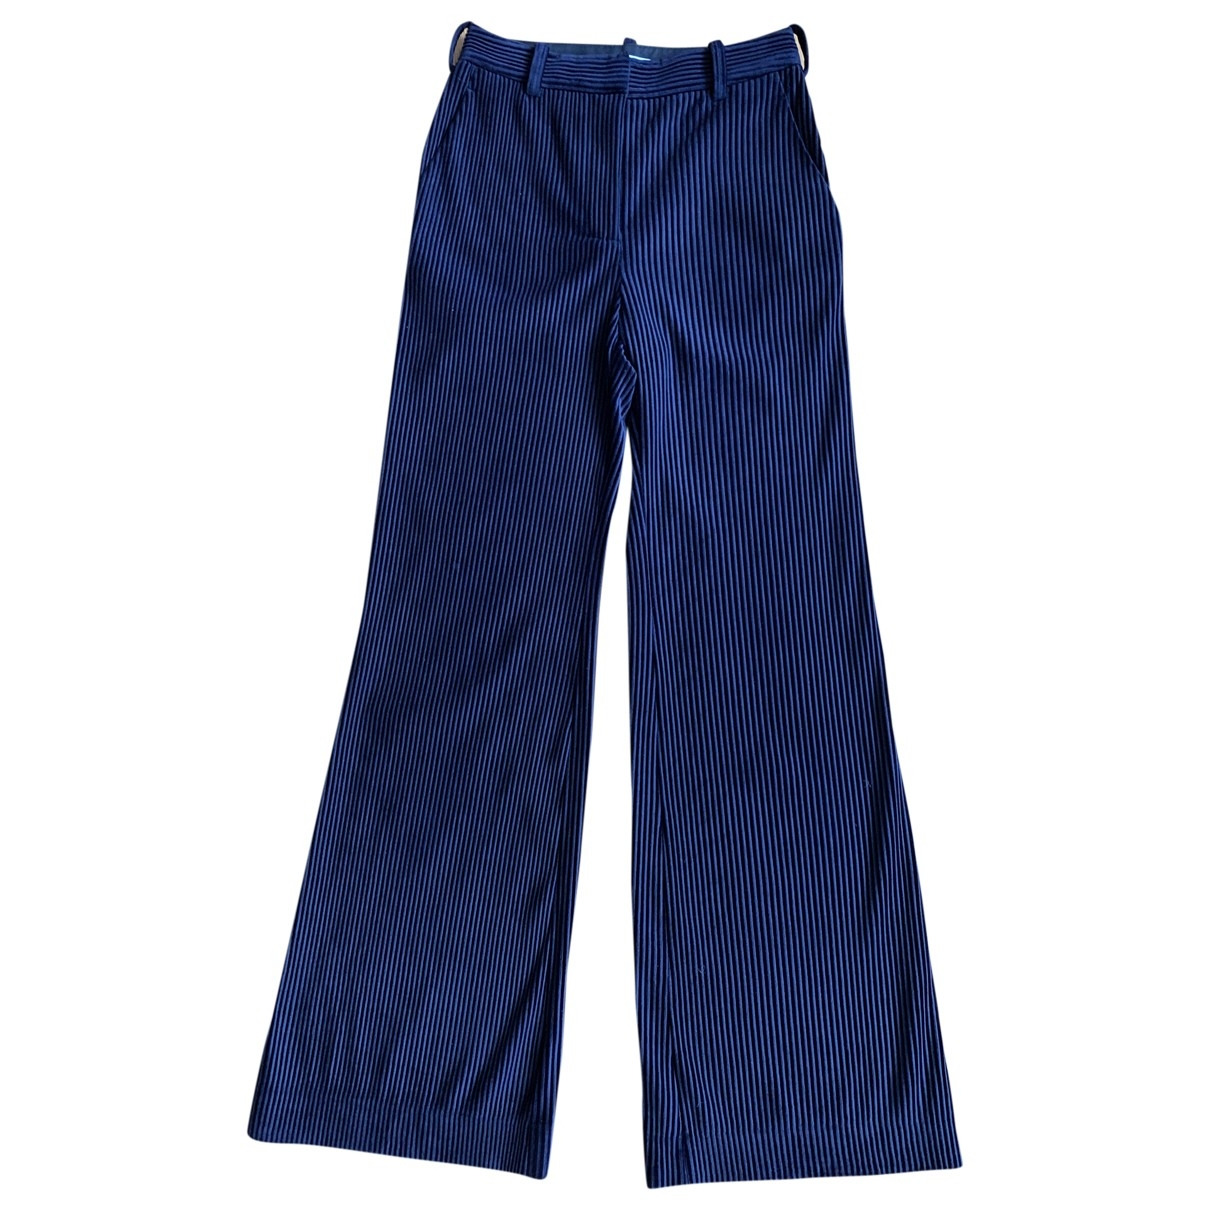 Acne Studios \N Navy Trousers for Women S International